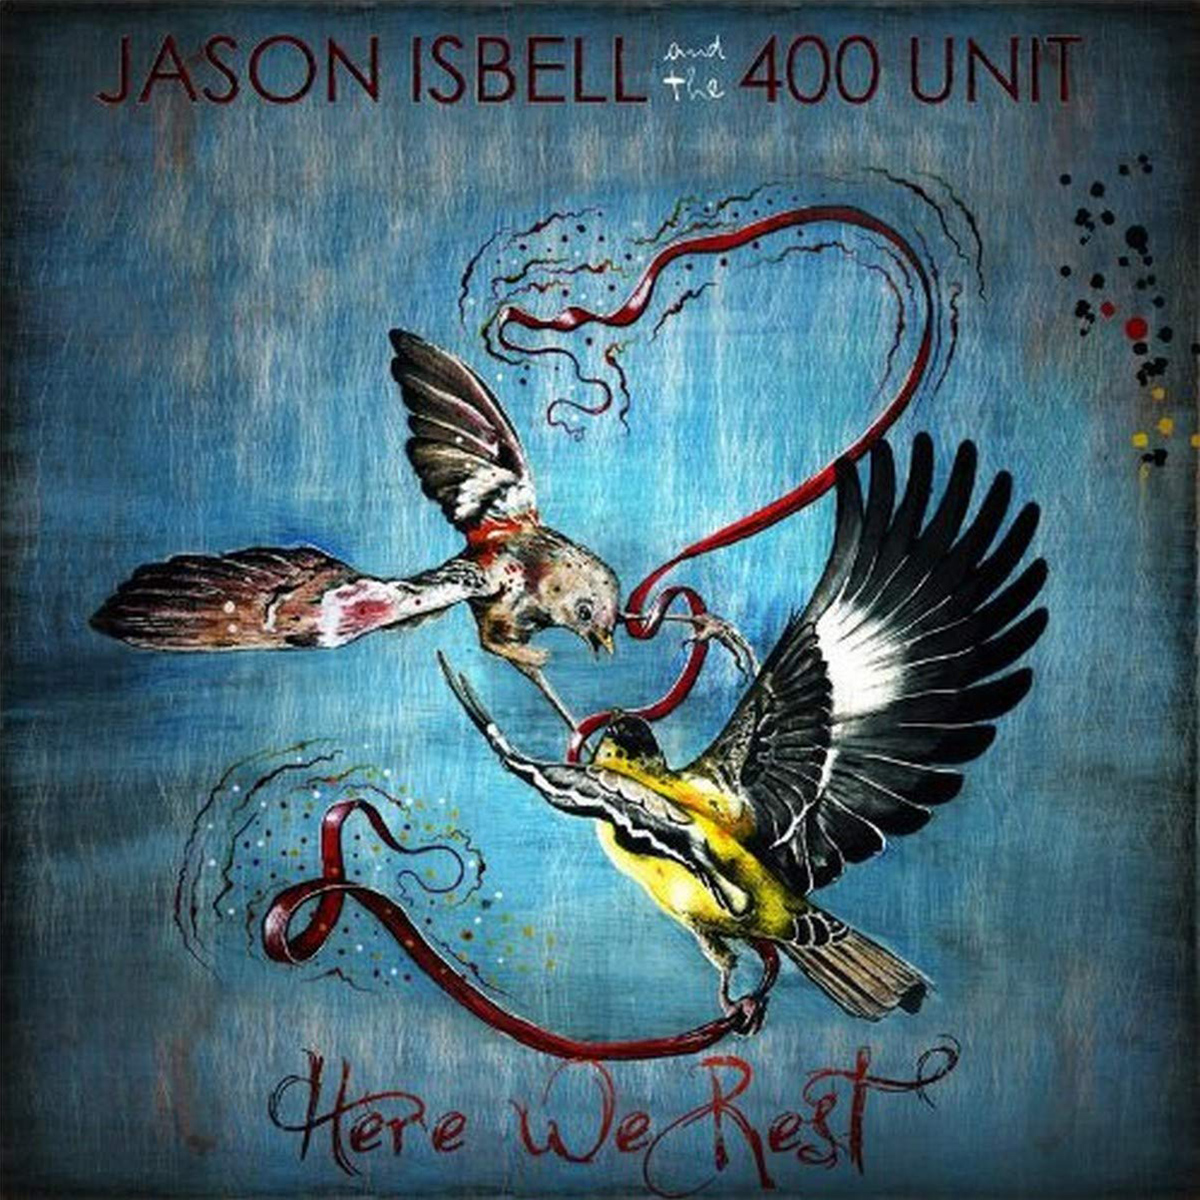 Jason Isbell and the 400 Unit, Here We Rest